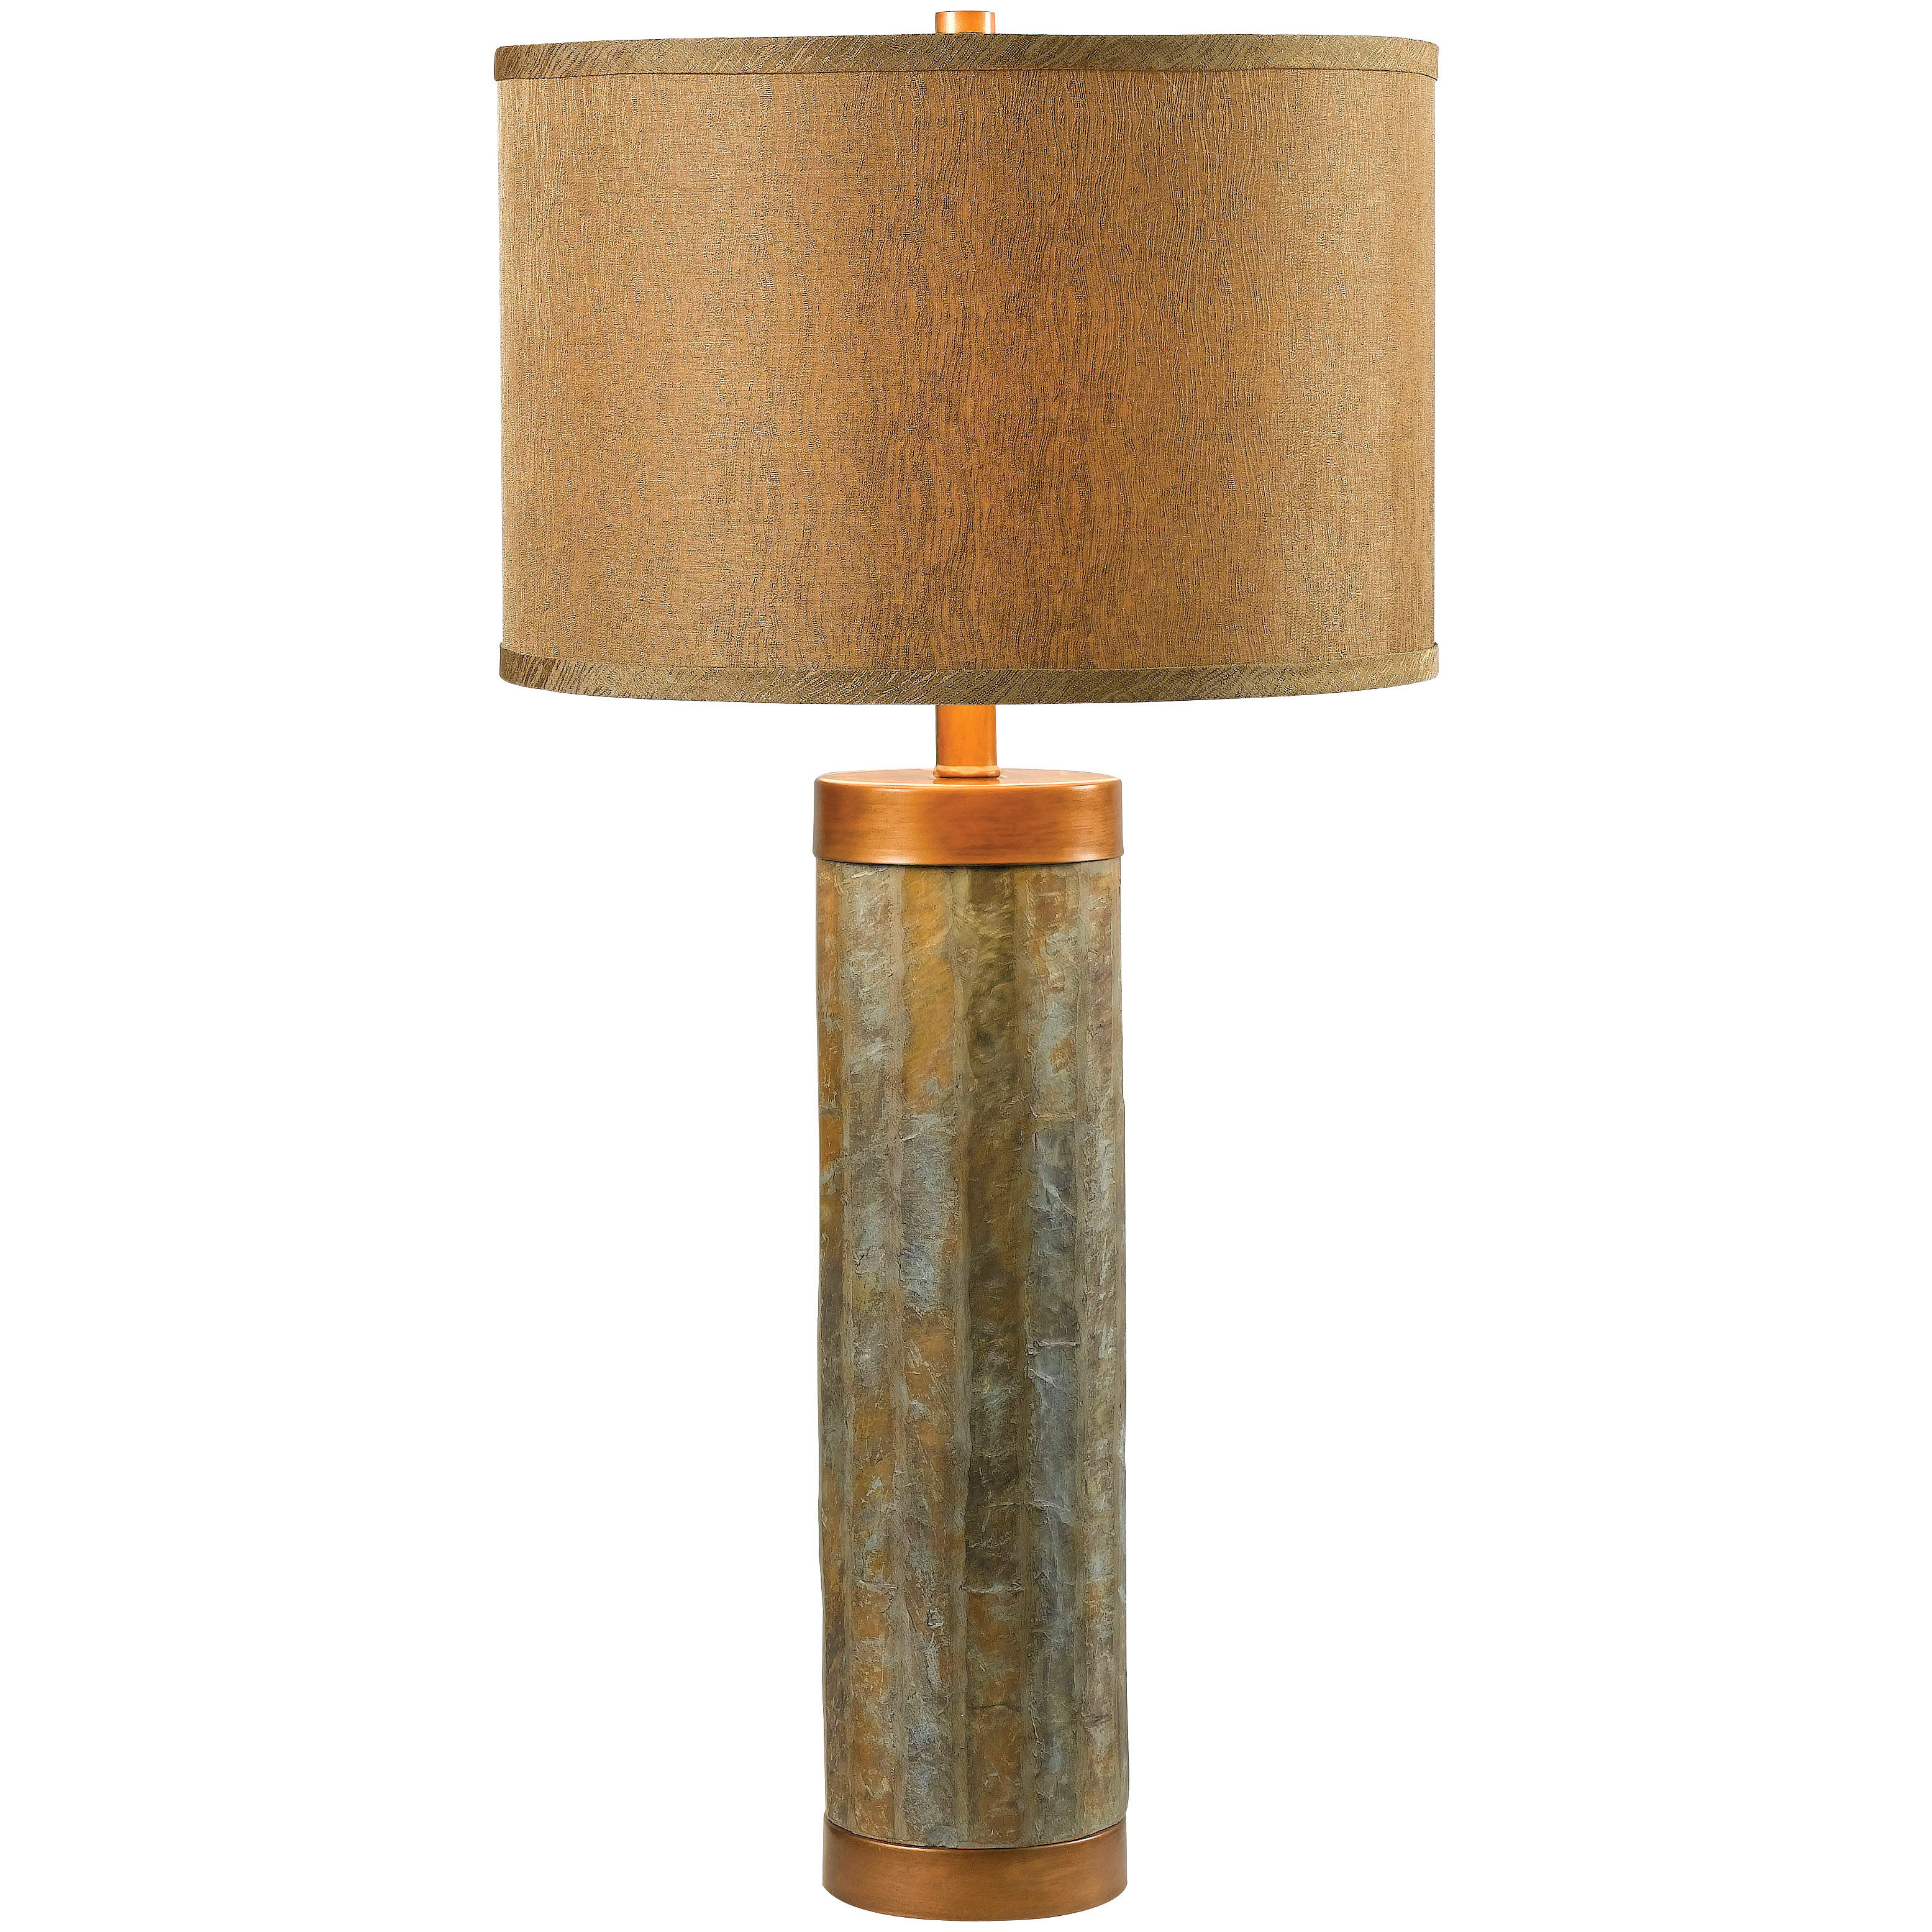 "Kenroy Home Mattias Table Lamp. Elegance and colorful appeal, blended to decor perfection. A column of natural green slate, with copper-finished metallic accents and a gorgeous antique gold fabric shade... if you're looking to take your decor in a new direction, look no further. Lamp stands 30 1/2"" overall, shade is 15"" diam. Uses one 150W bulb (not included). UL Listed. Some simple assembly required. - $129.99"